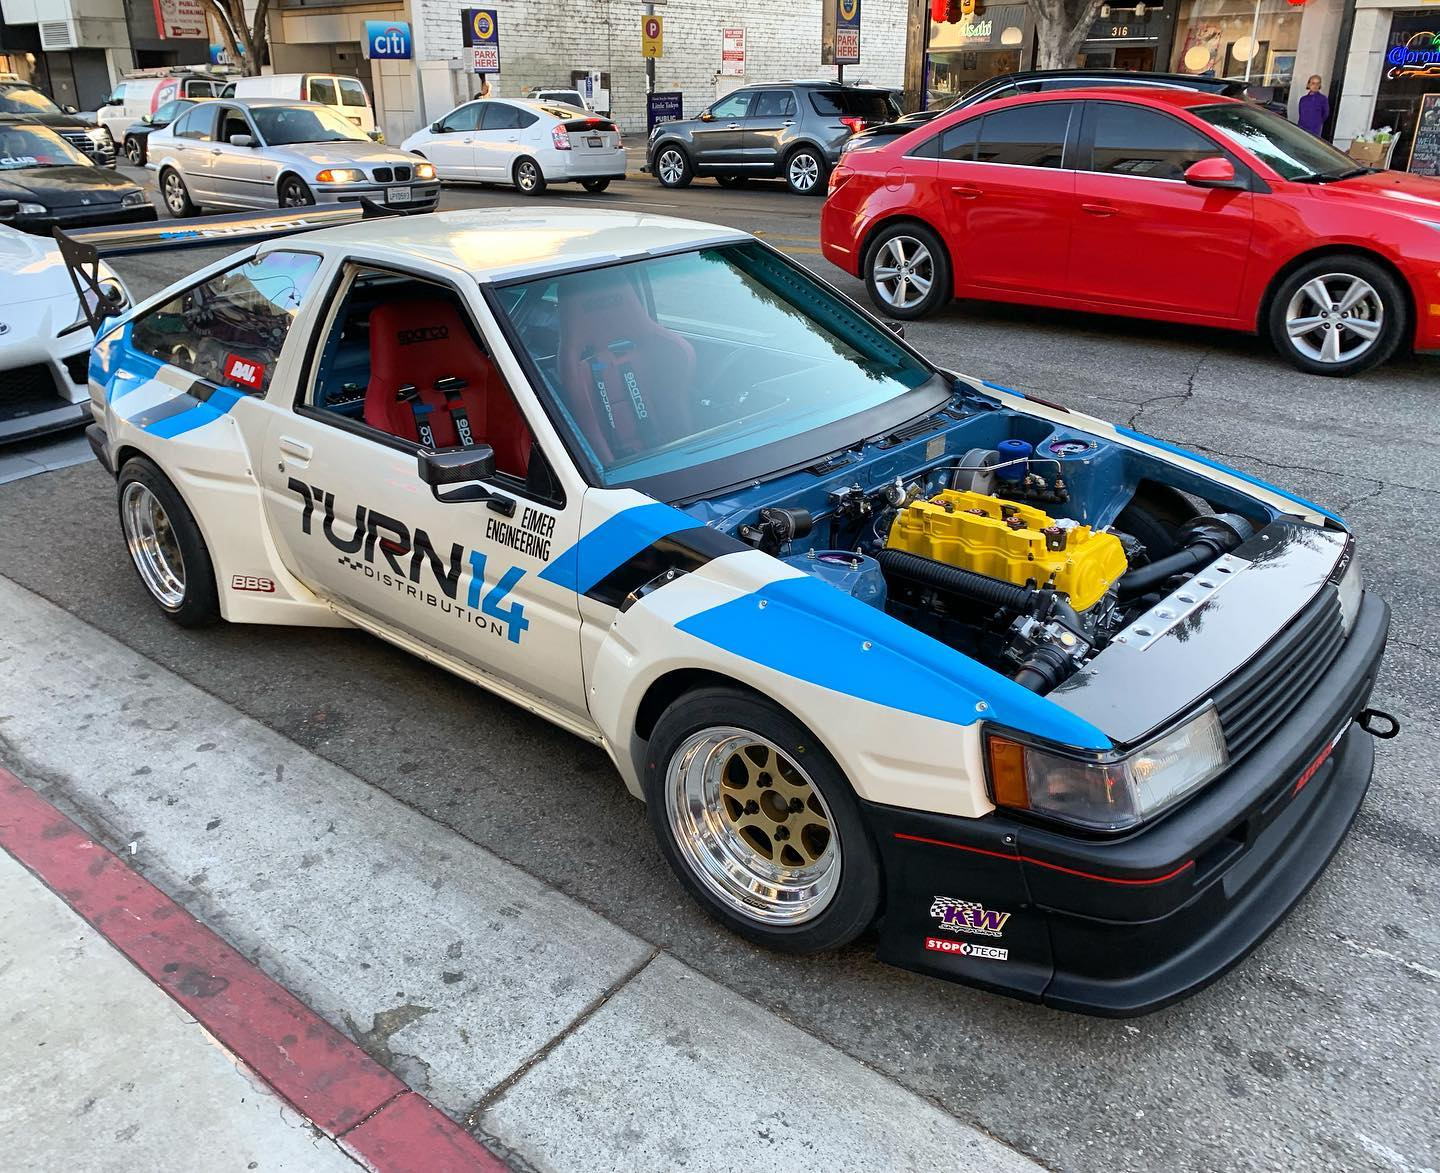 Toyota AE86 with a turbo K20C1 inline-four